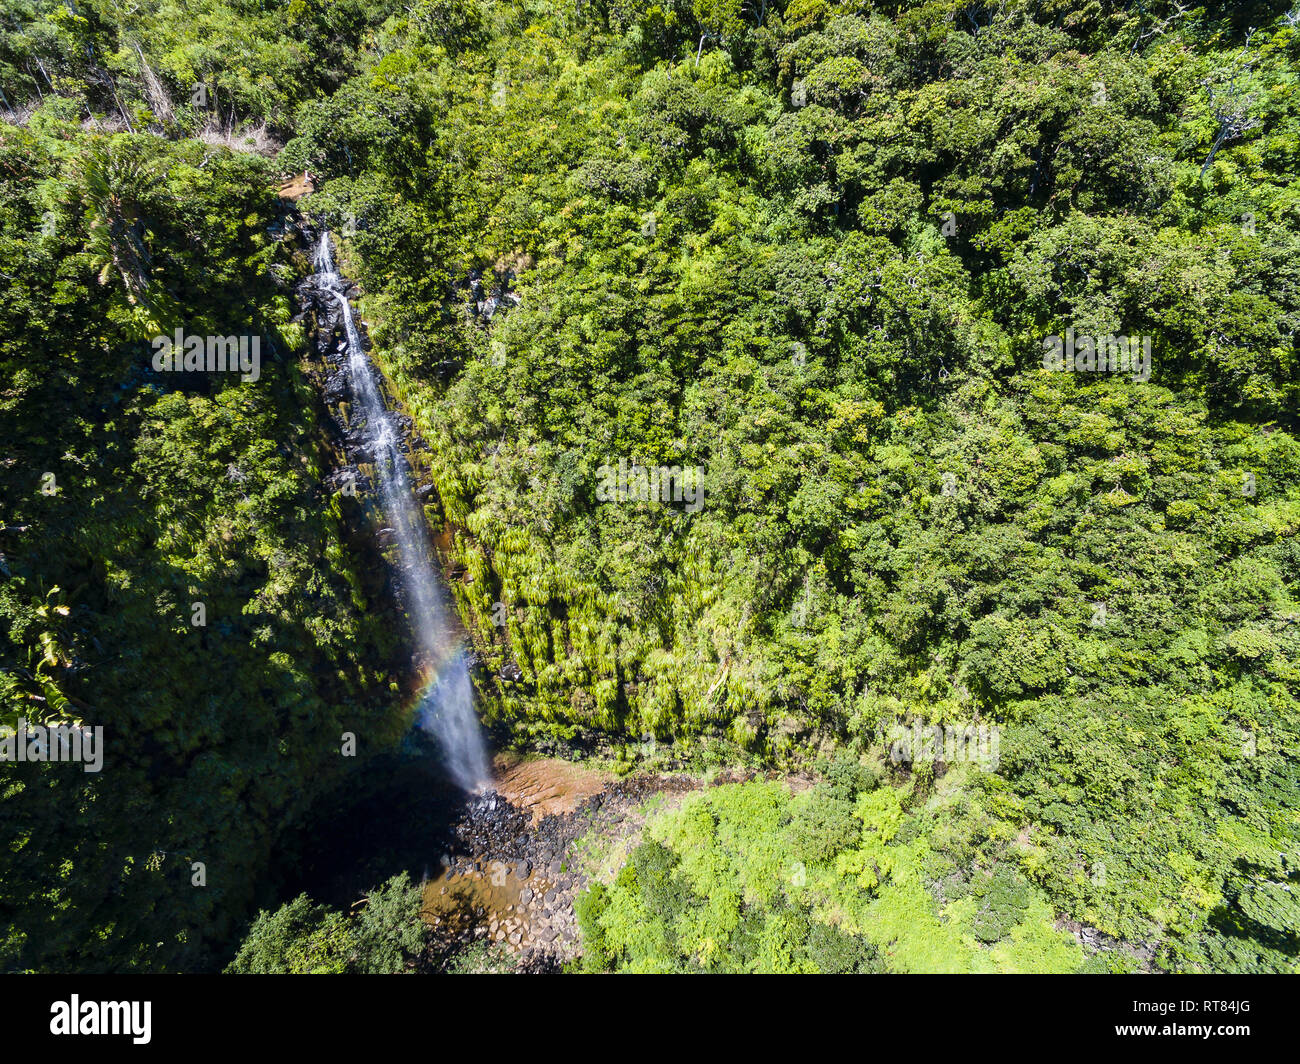 Mauritius, Black River Gorges National Park, Aerial View of Mare Aux Joncs Waterfall - Stock Image